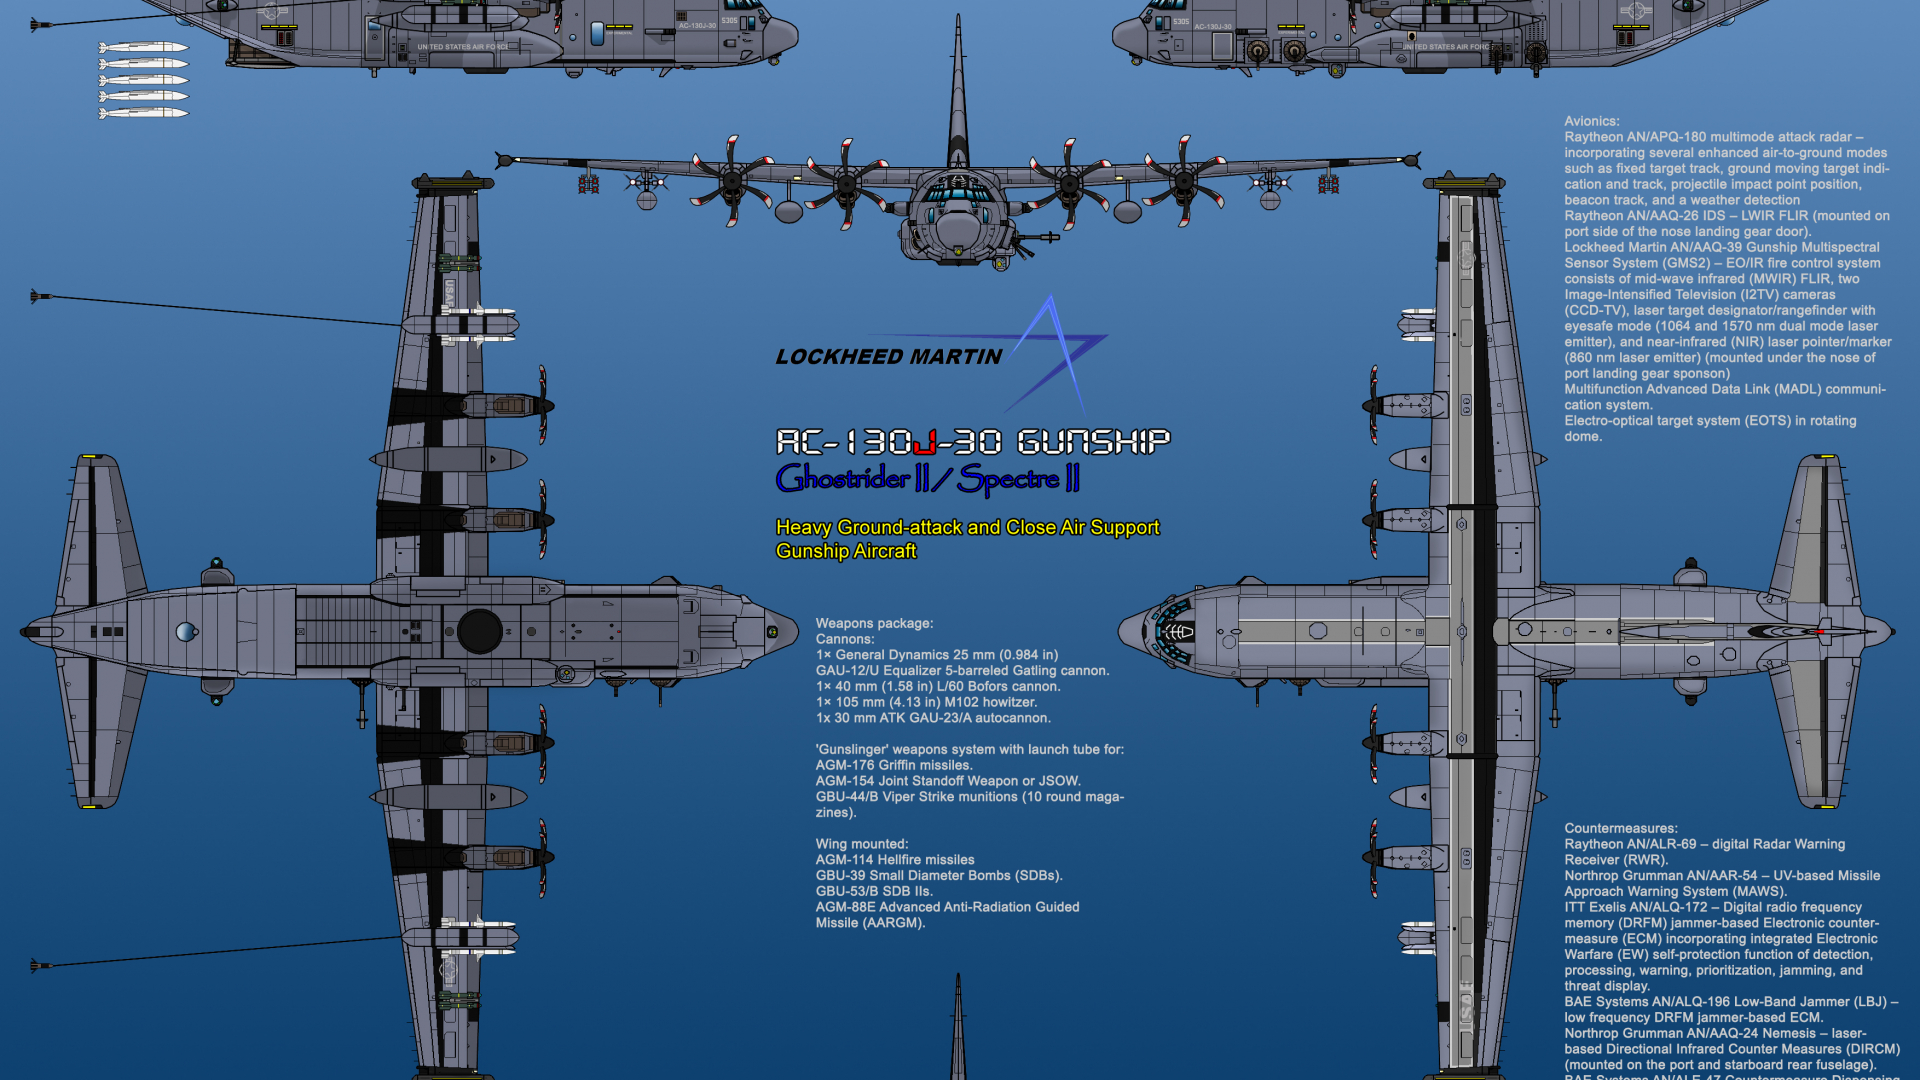 Free Download Angel Of Death Wallpaper Ac 130 Lockheed Martin Ac